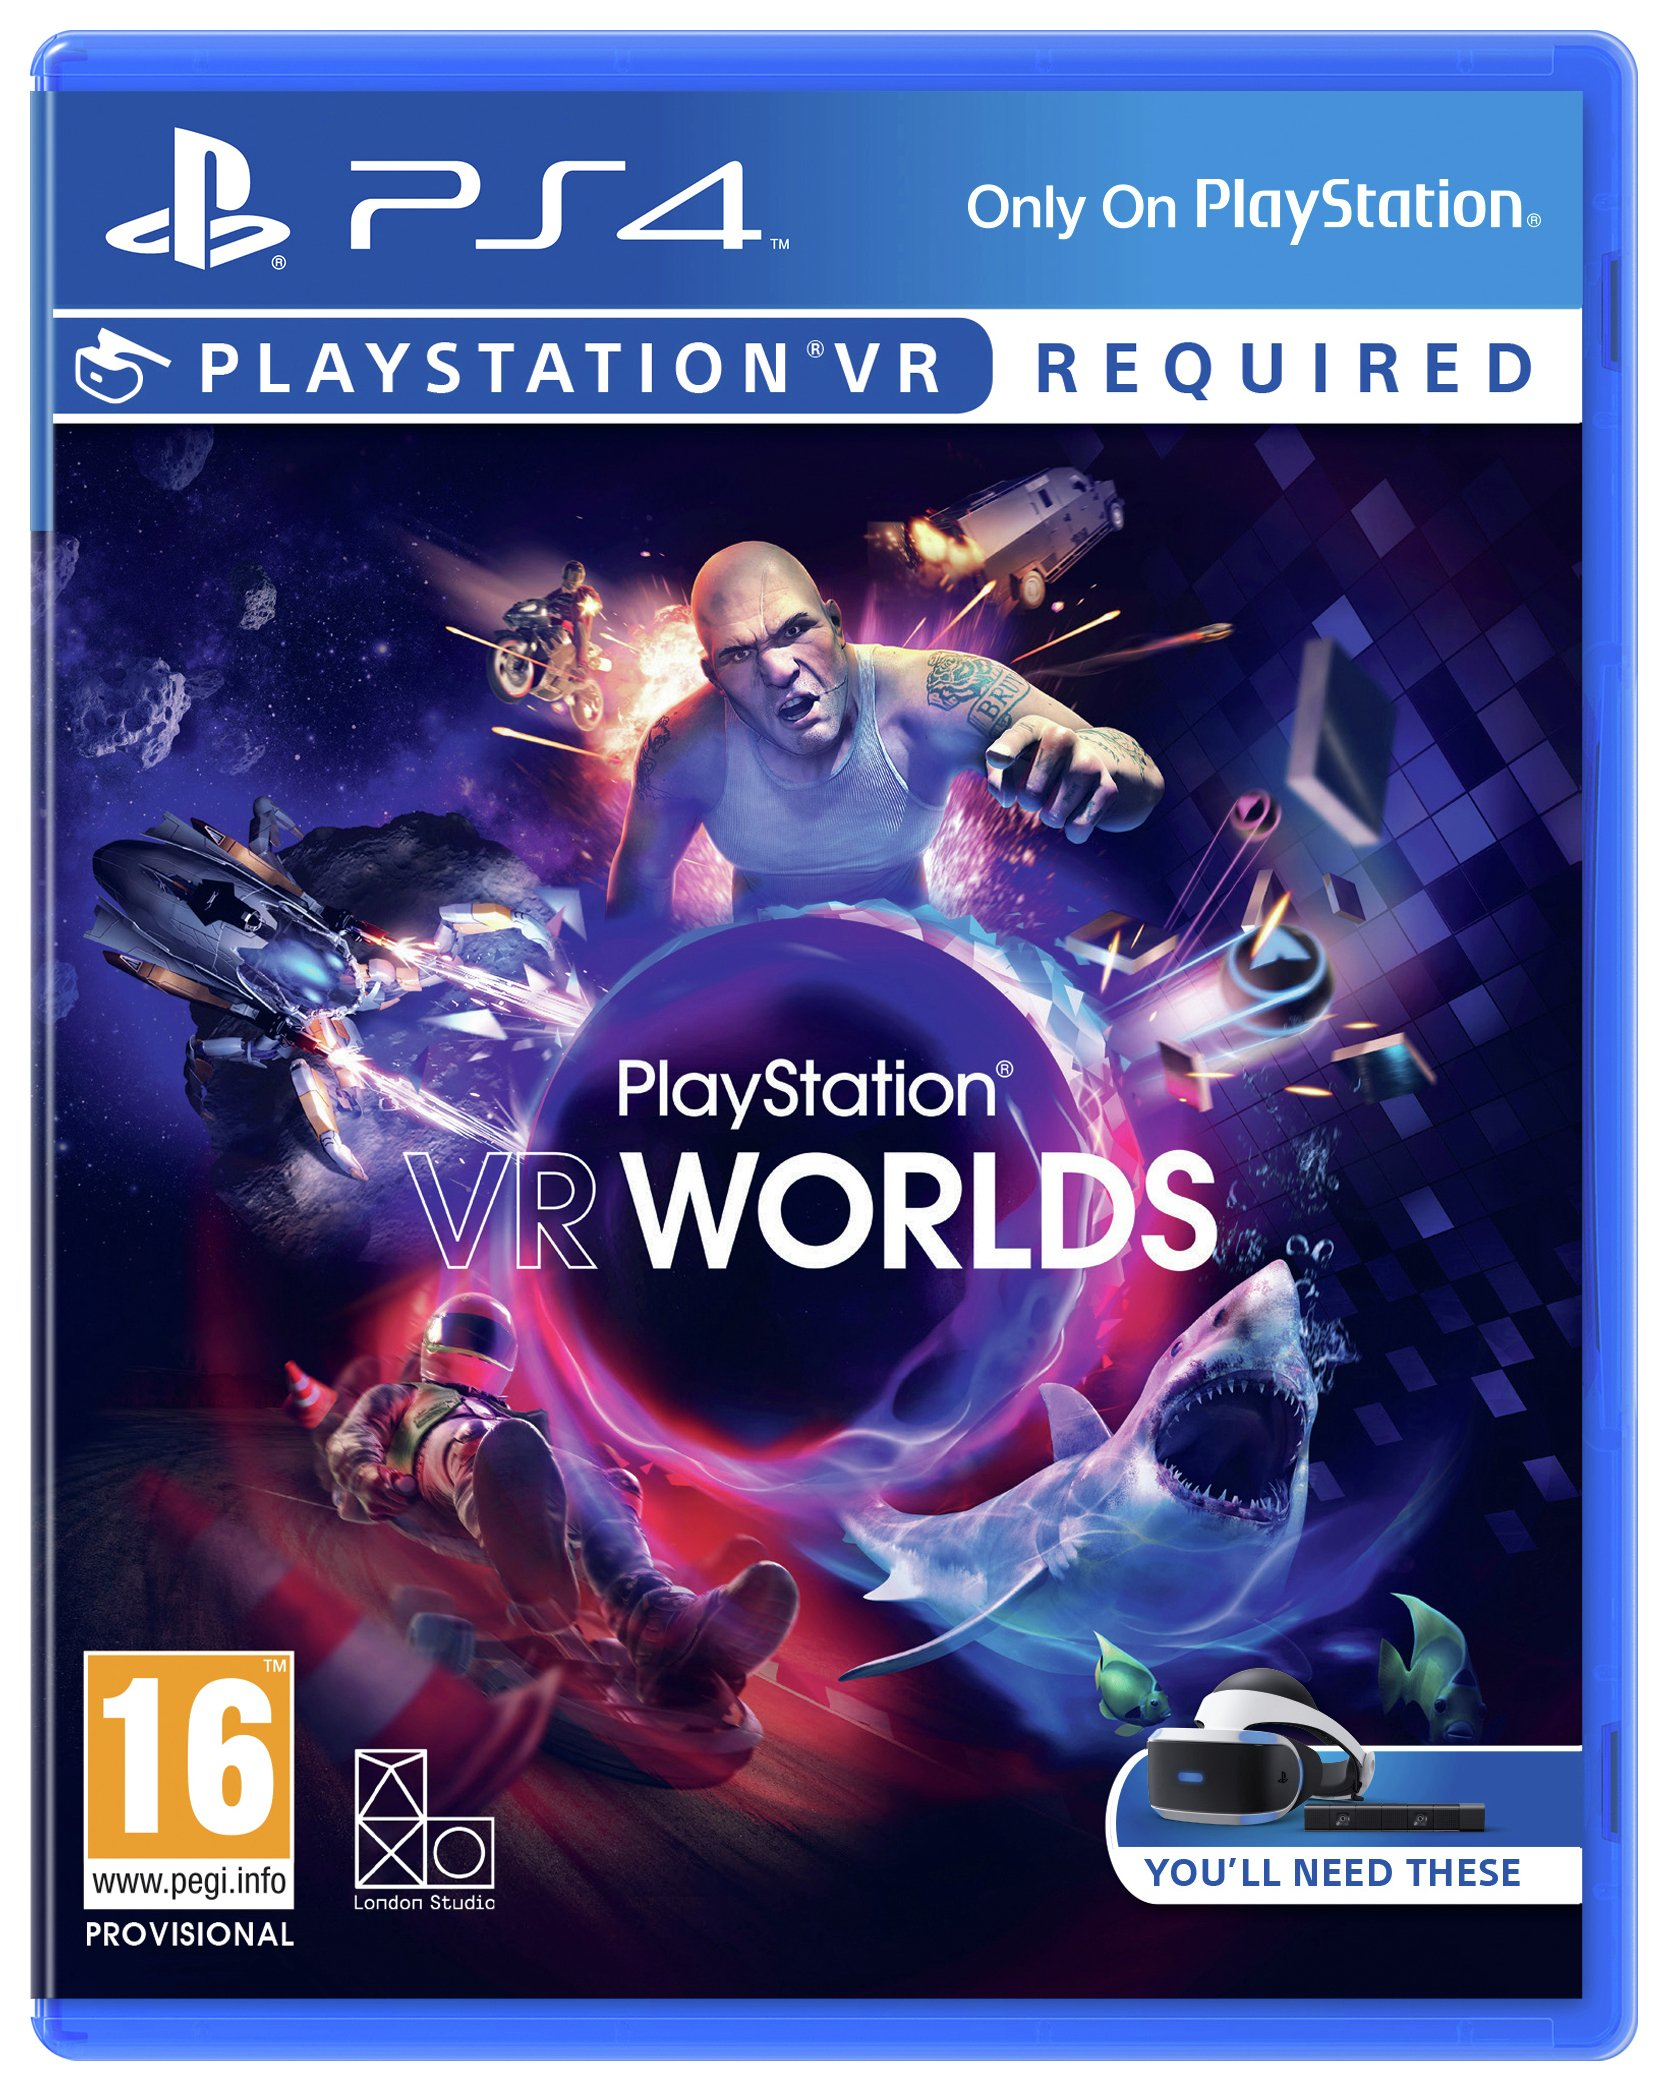 Playstation VR Worlds PS4 Game.